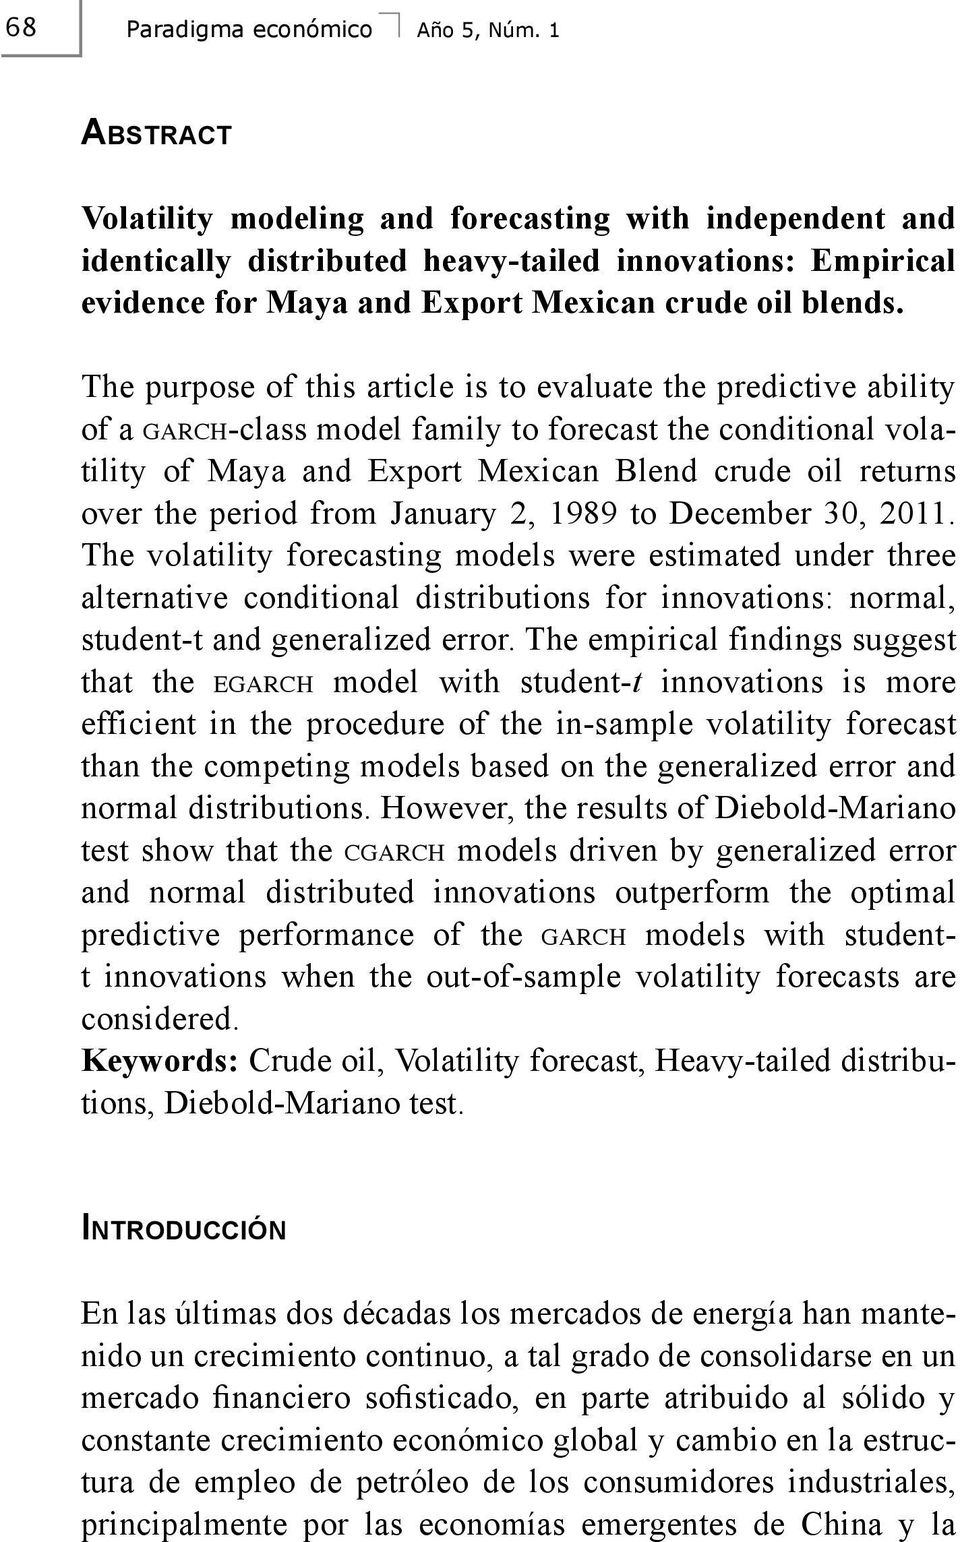 The purpose of this article is to evaluate the predictive ability of a garch-class model family to forecast the conditional volatility of Maya and Export Mexican Blend crude oil returns over the